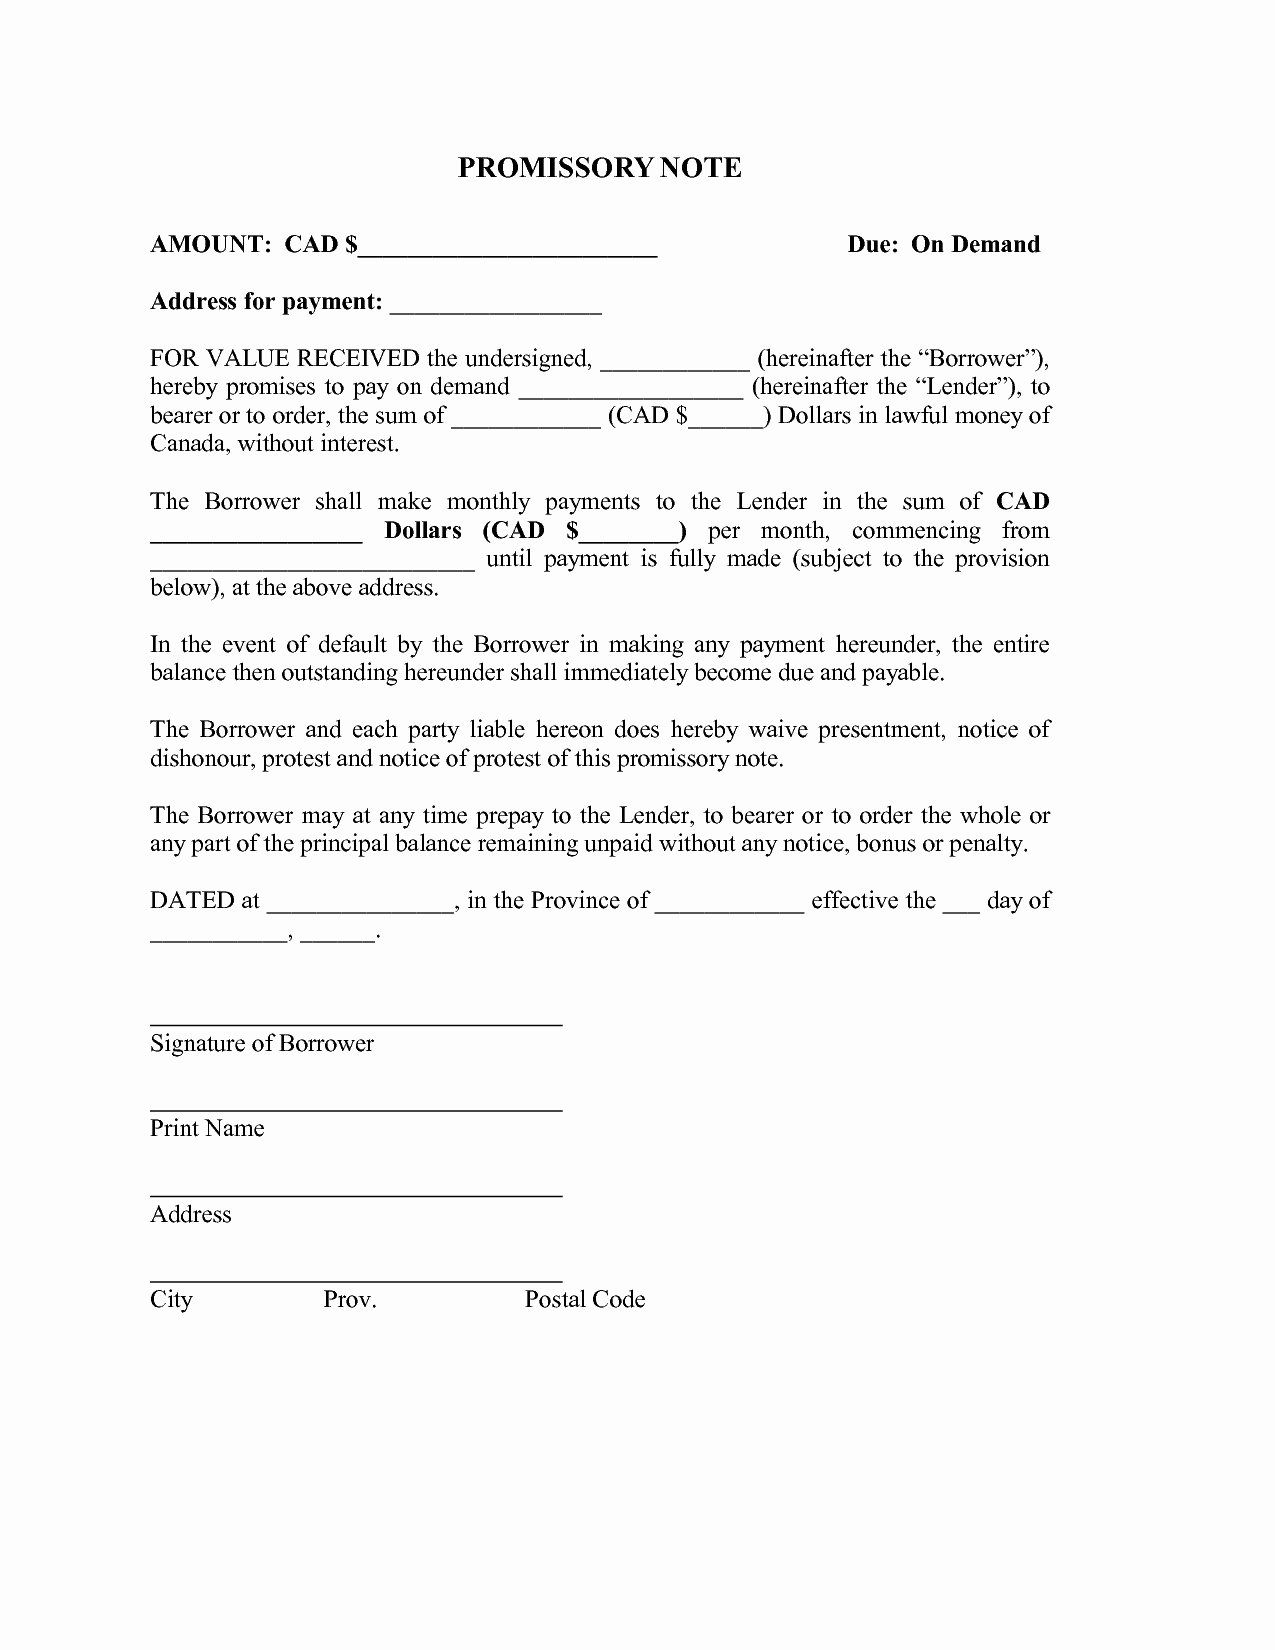 Personal Loan Promissory Note Template Luxury Demand Letter Promissory Note Template Samples